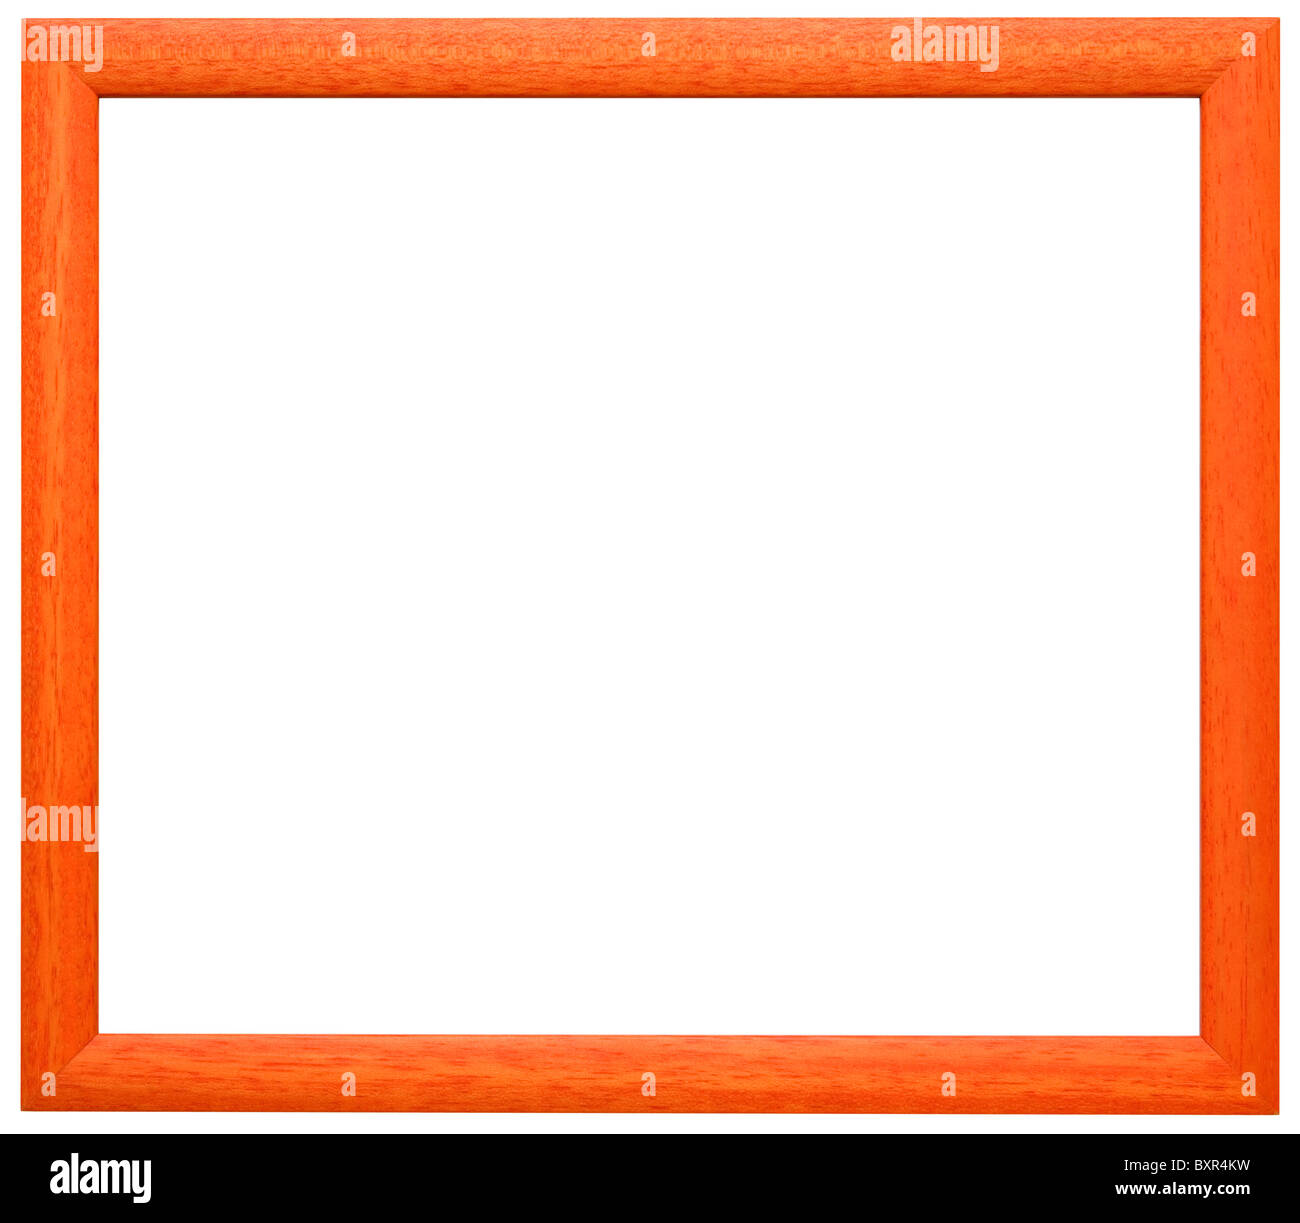 Simple orange wooden frame isolated with two clipping paths stock simple orange wooden frame isolated with two clipping paths jeuxipadfo Images